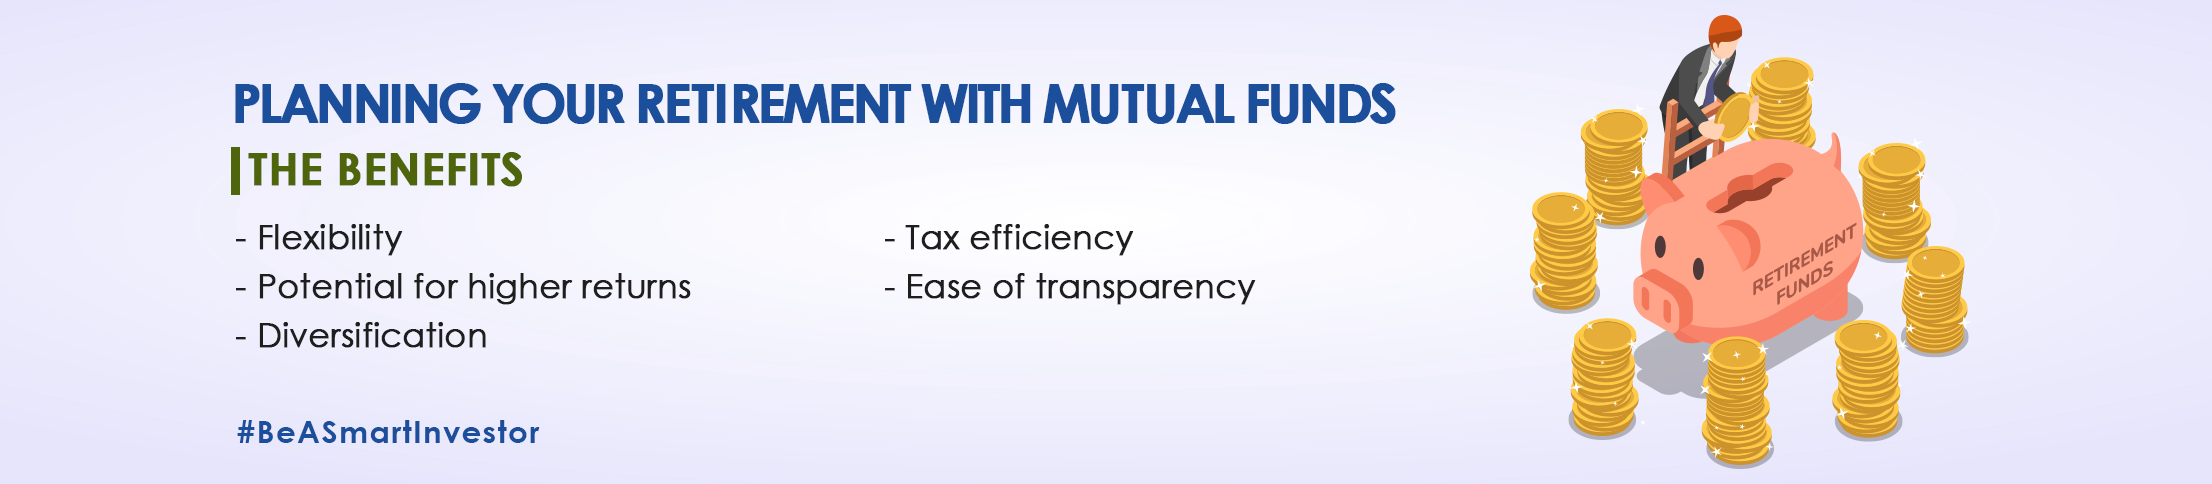 Planning Retirement with Mutual Funds